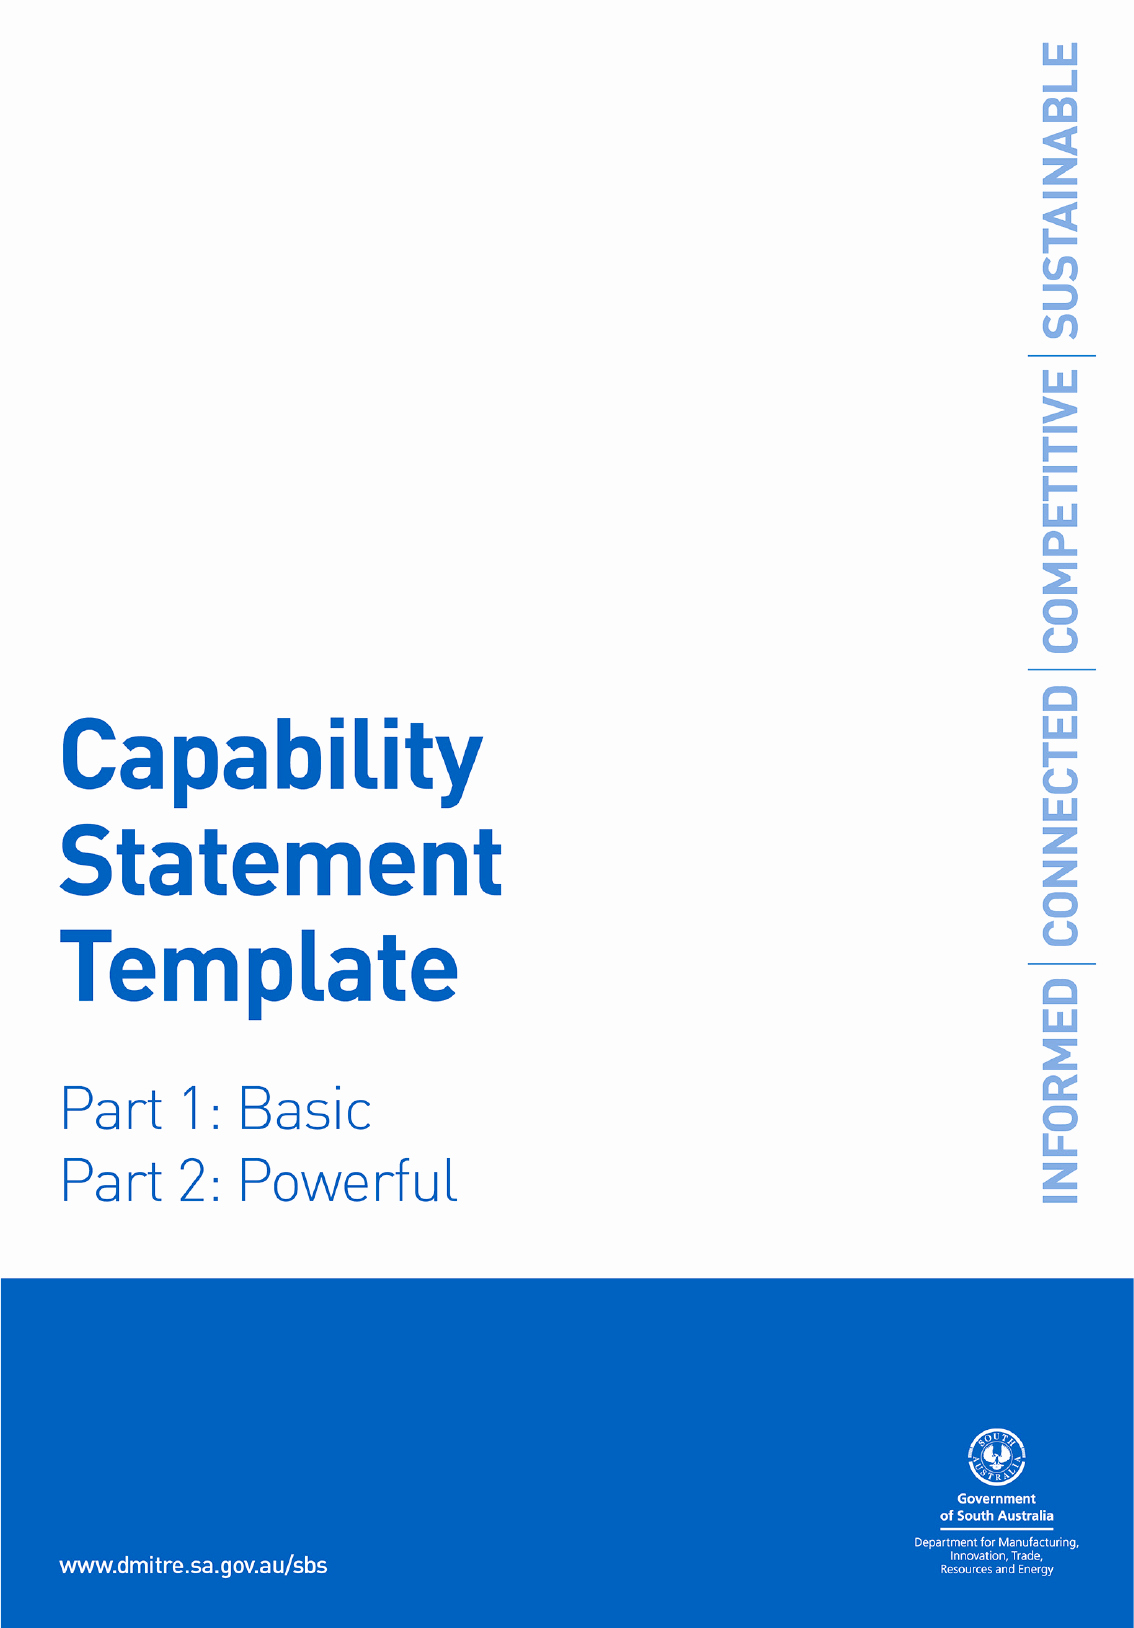 Capability Statement Template Doc New Capability Statement Template In Word and Pdf formats